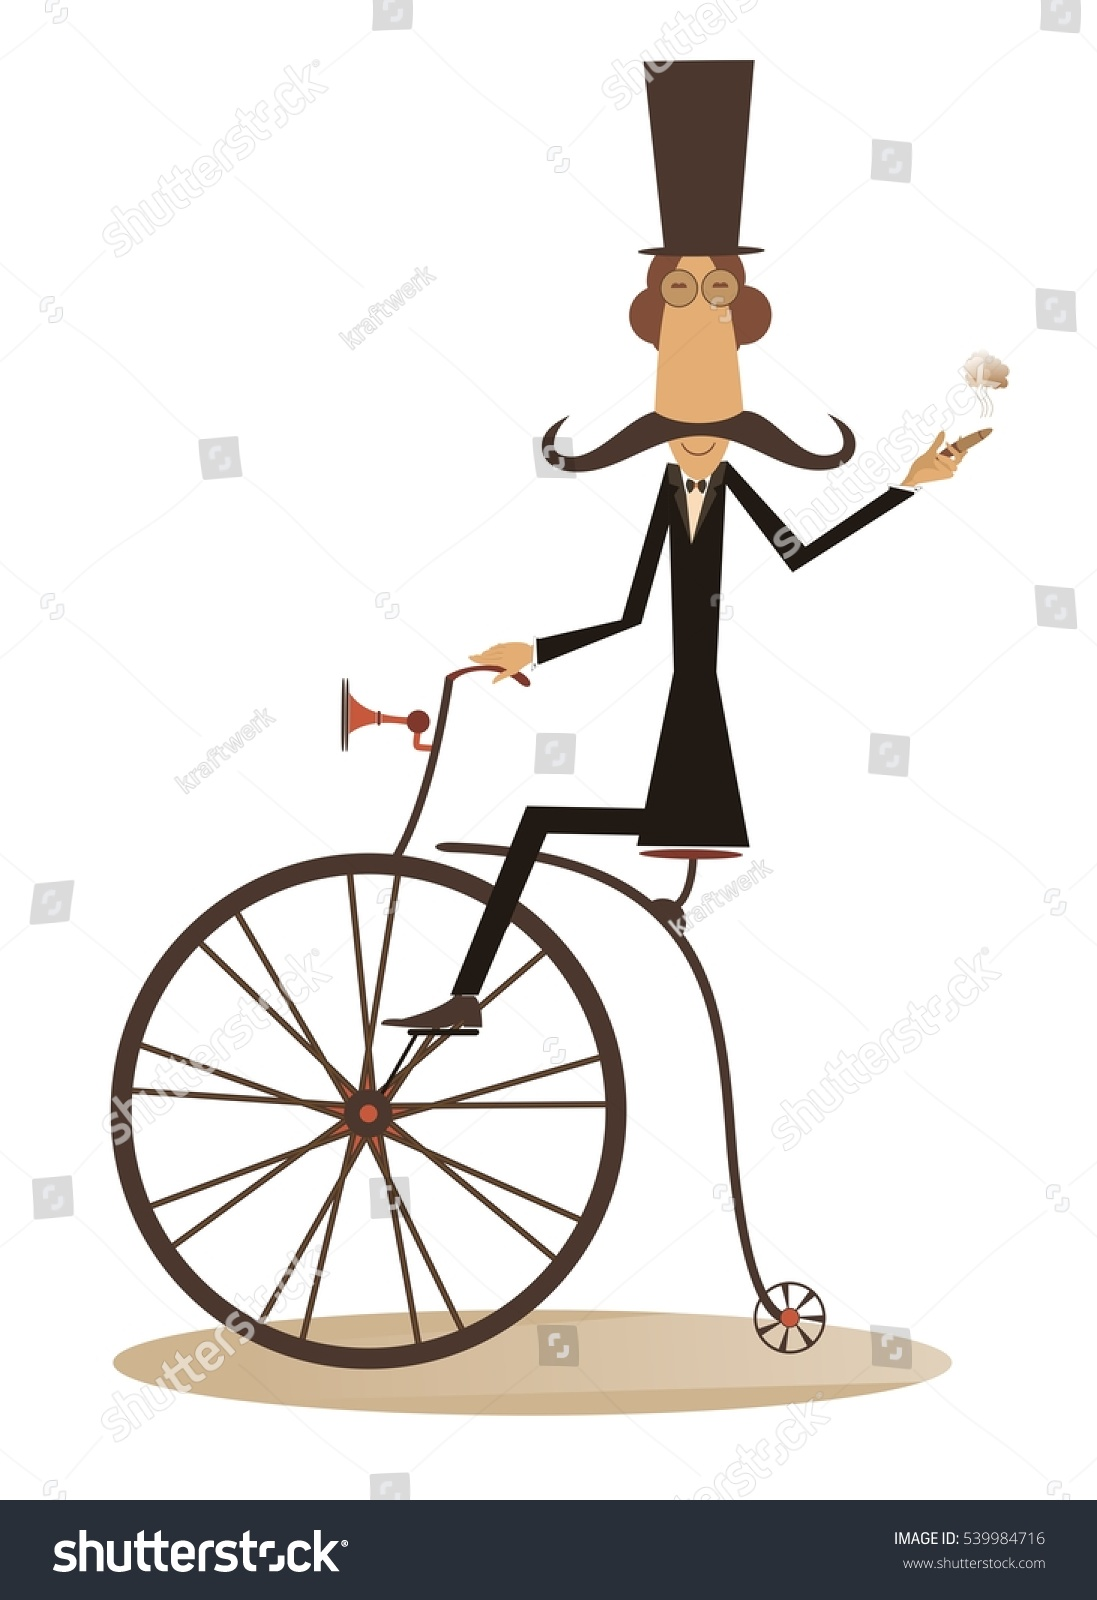 Cartoon Man Rides Bike Gentleman Mustache Stock Vector 539984716